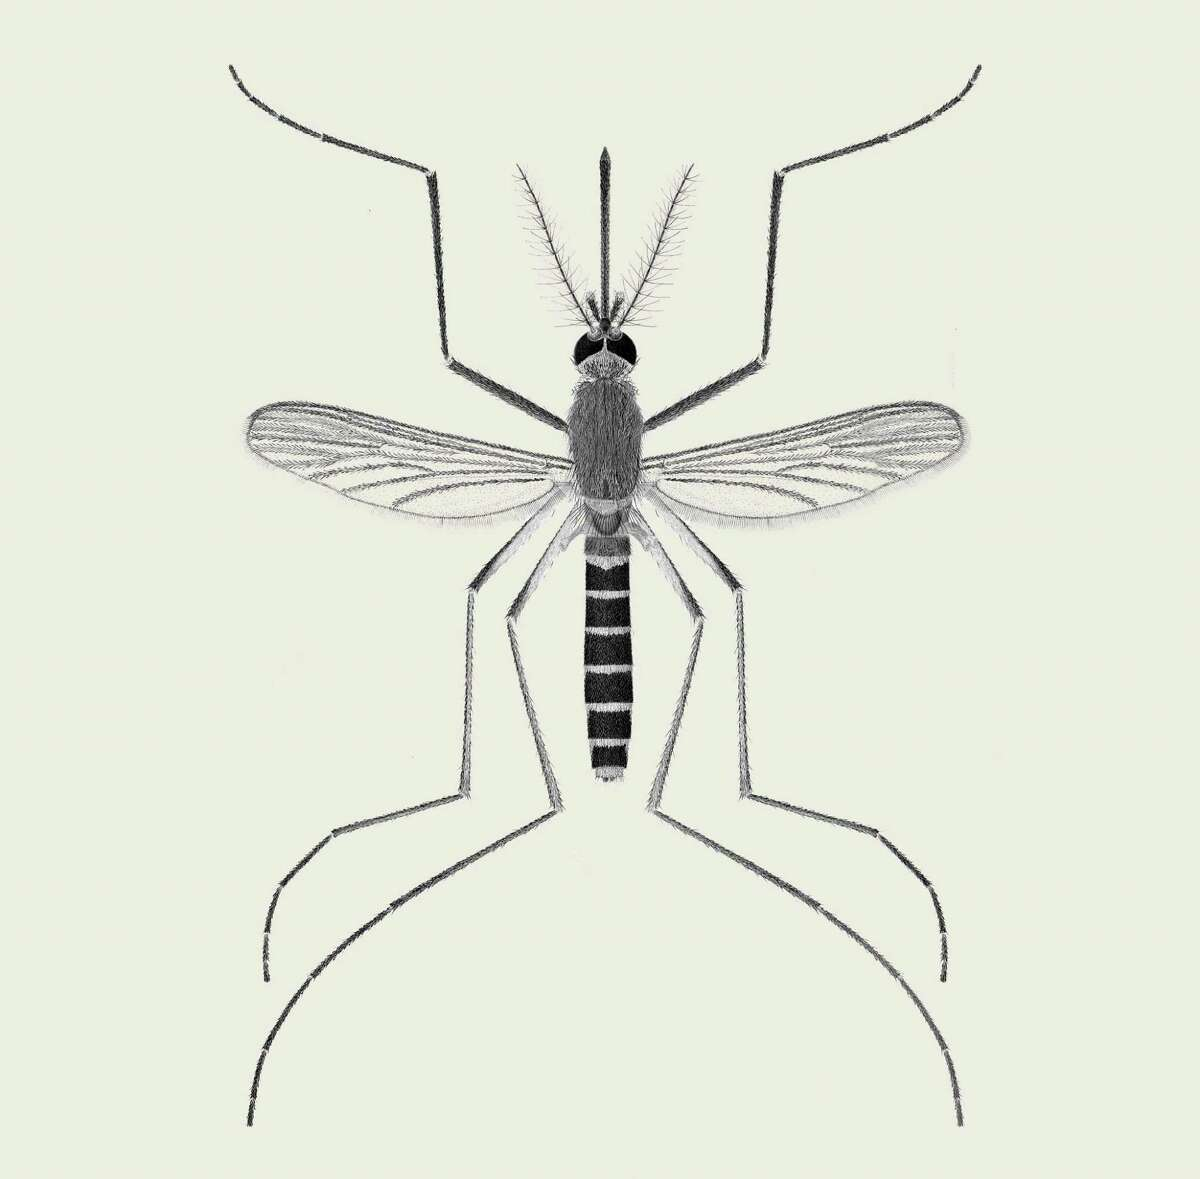 In an undated handout photo, an illustration of the culex pipiens, the northern house mosquito. The species is the primary carrier of the West Nile virus, and is found in urban areas across the United States. (S.Shibata and A. Shimazoe/Department of Entomology/Smithsonian Institution via The New York Times) -- NO SALES; FOR EDITORIAL USE ONLY WITH MOSQUITO TYPES BY EMILY S. RUEB FOR JUNE 29, 2016. ALL OTHER USE PROHIBITED. --